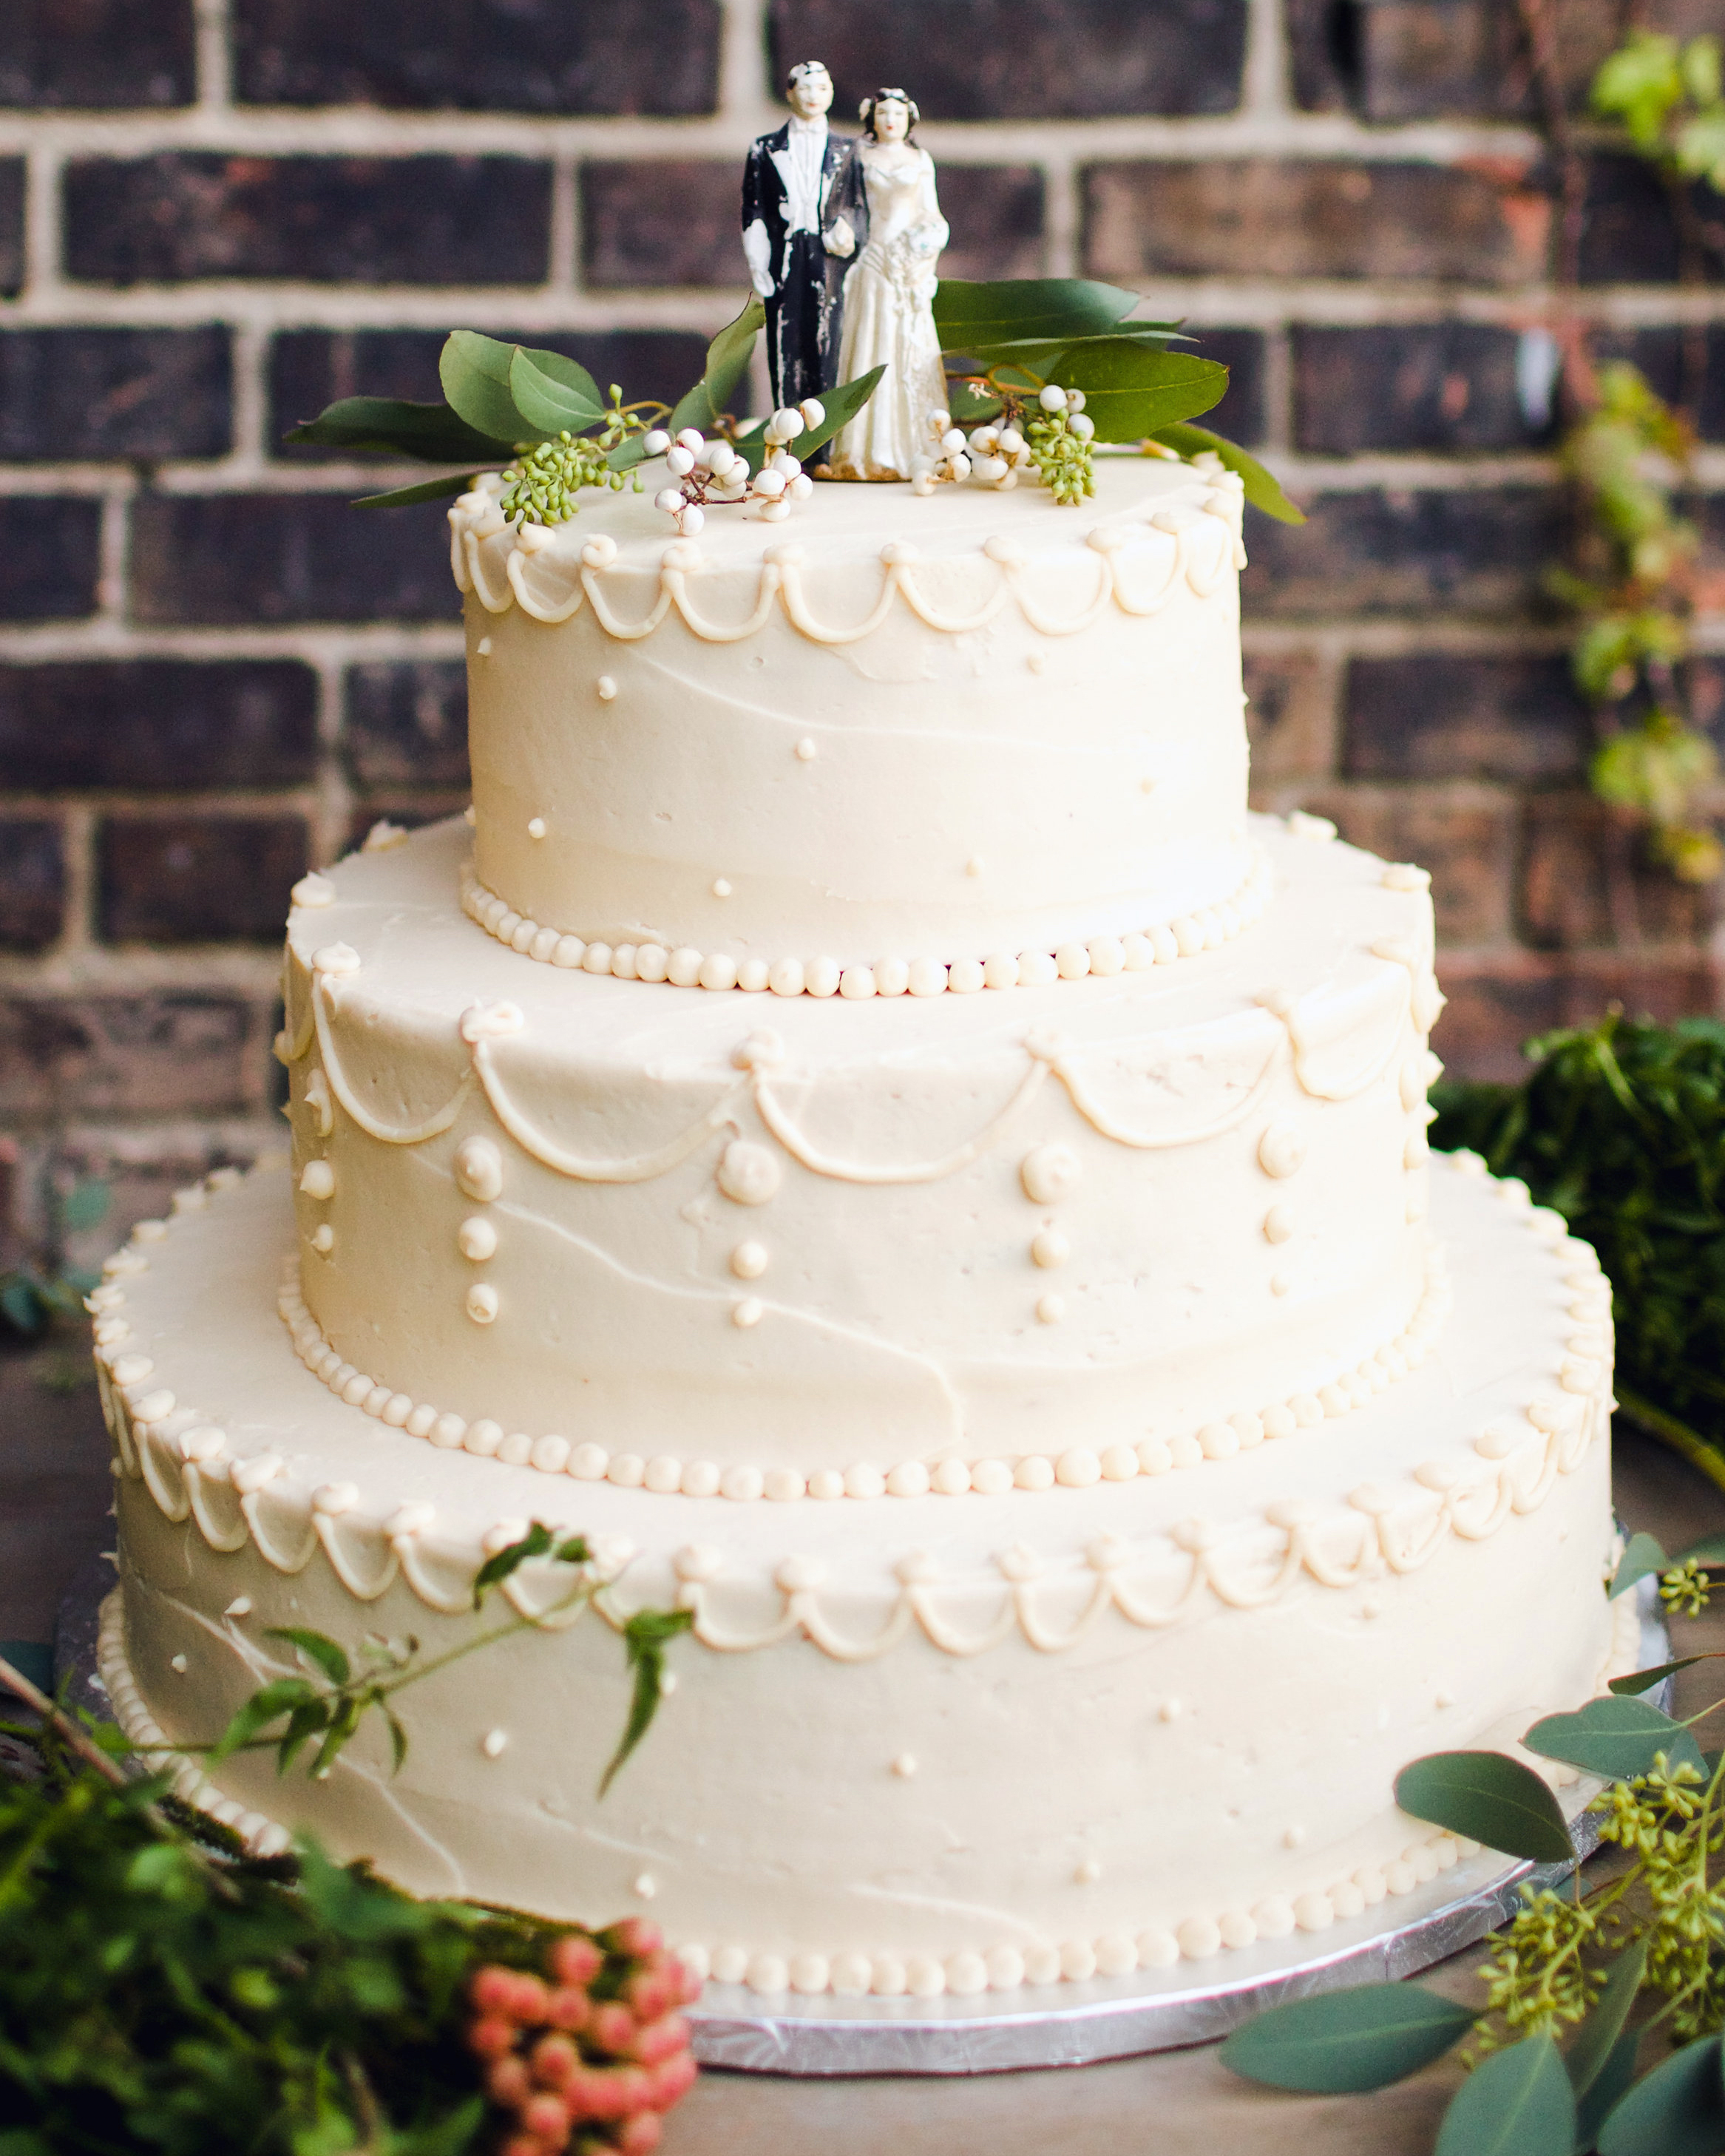 lauren-jake-wedding-cake-7391-s111838-0315.jpg